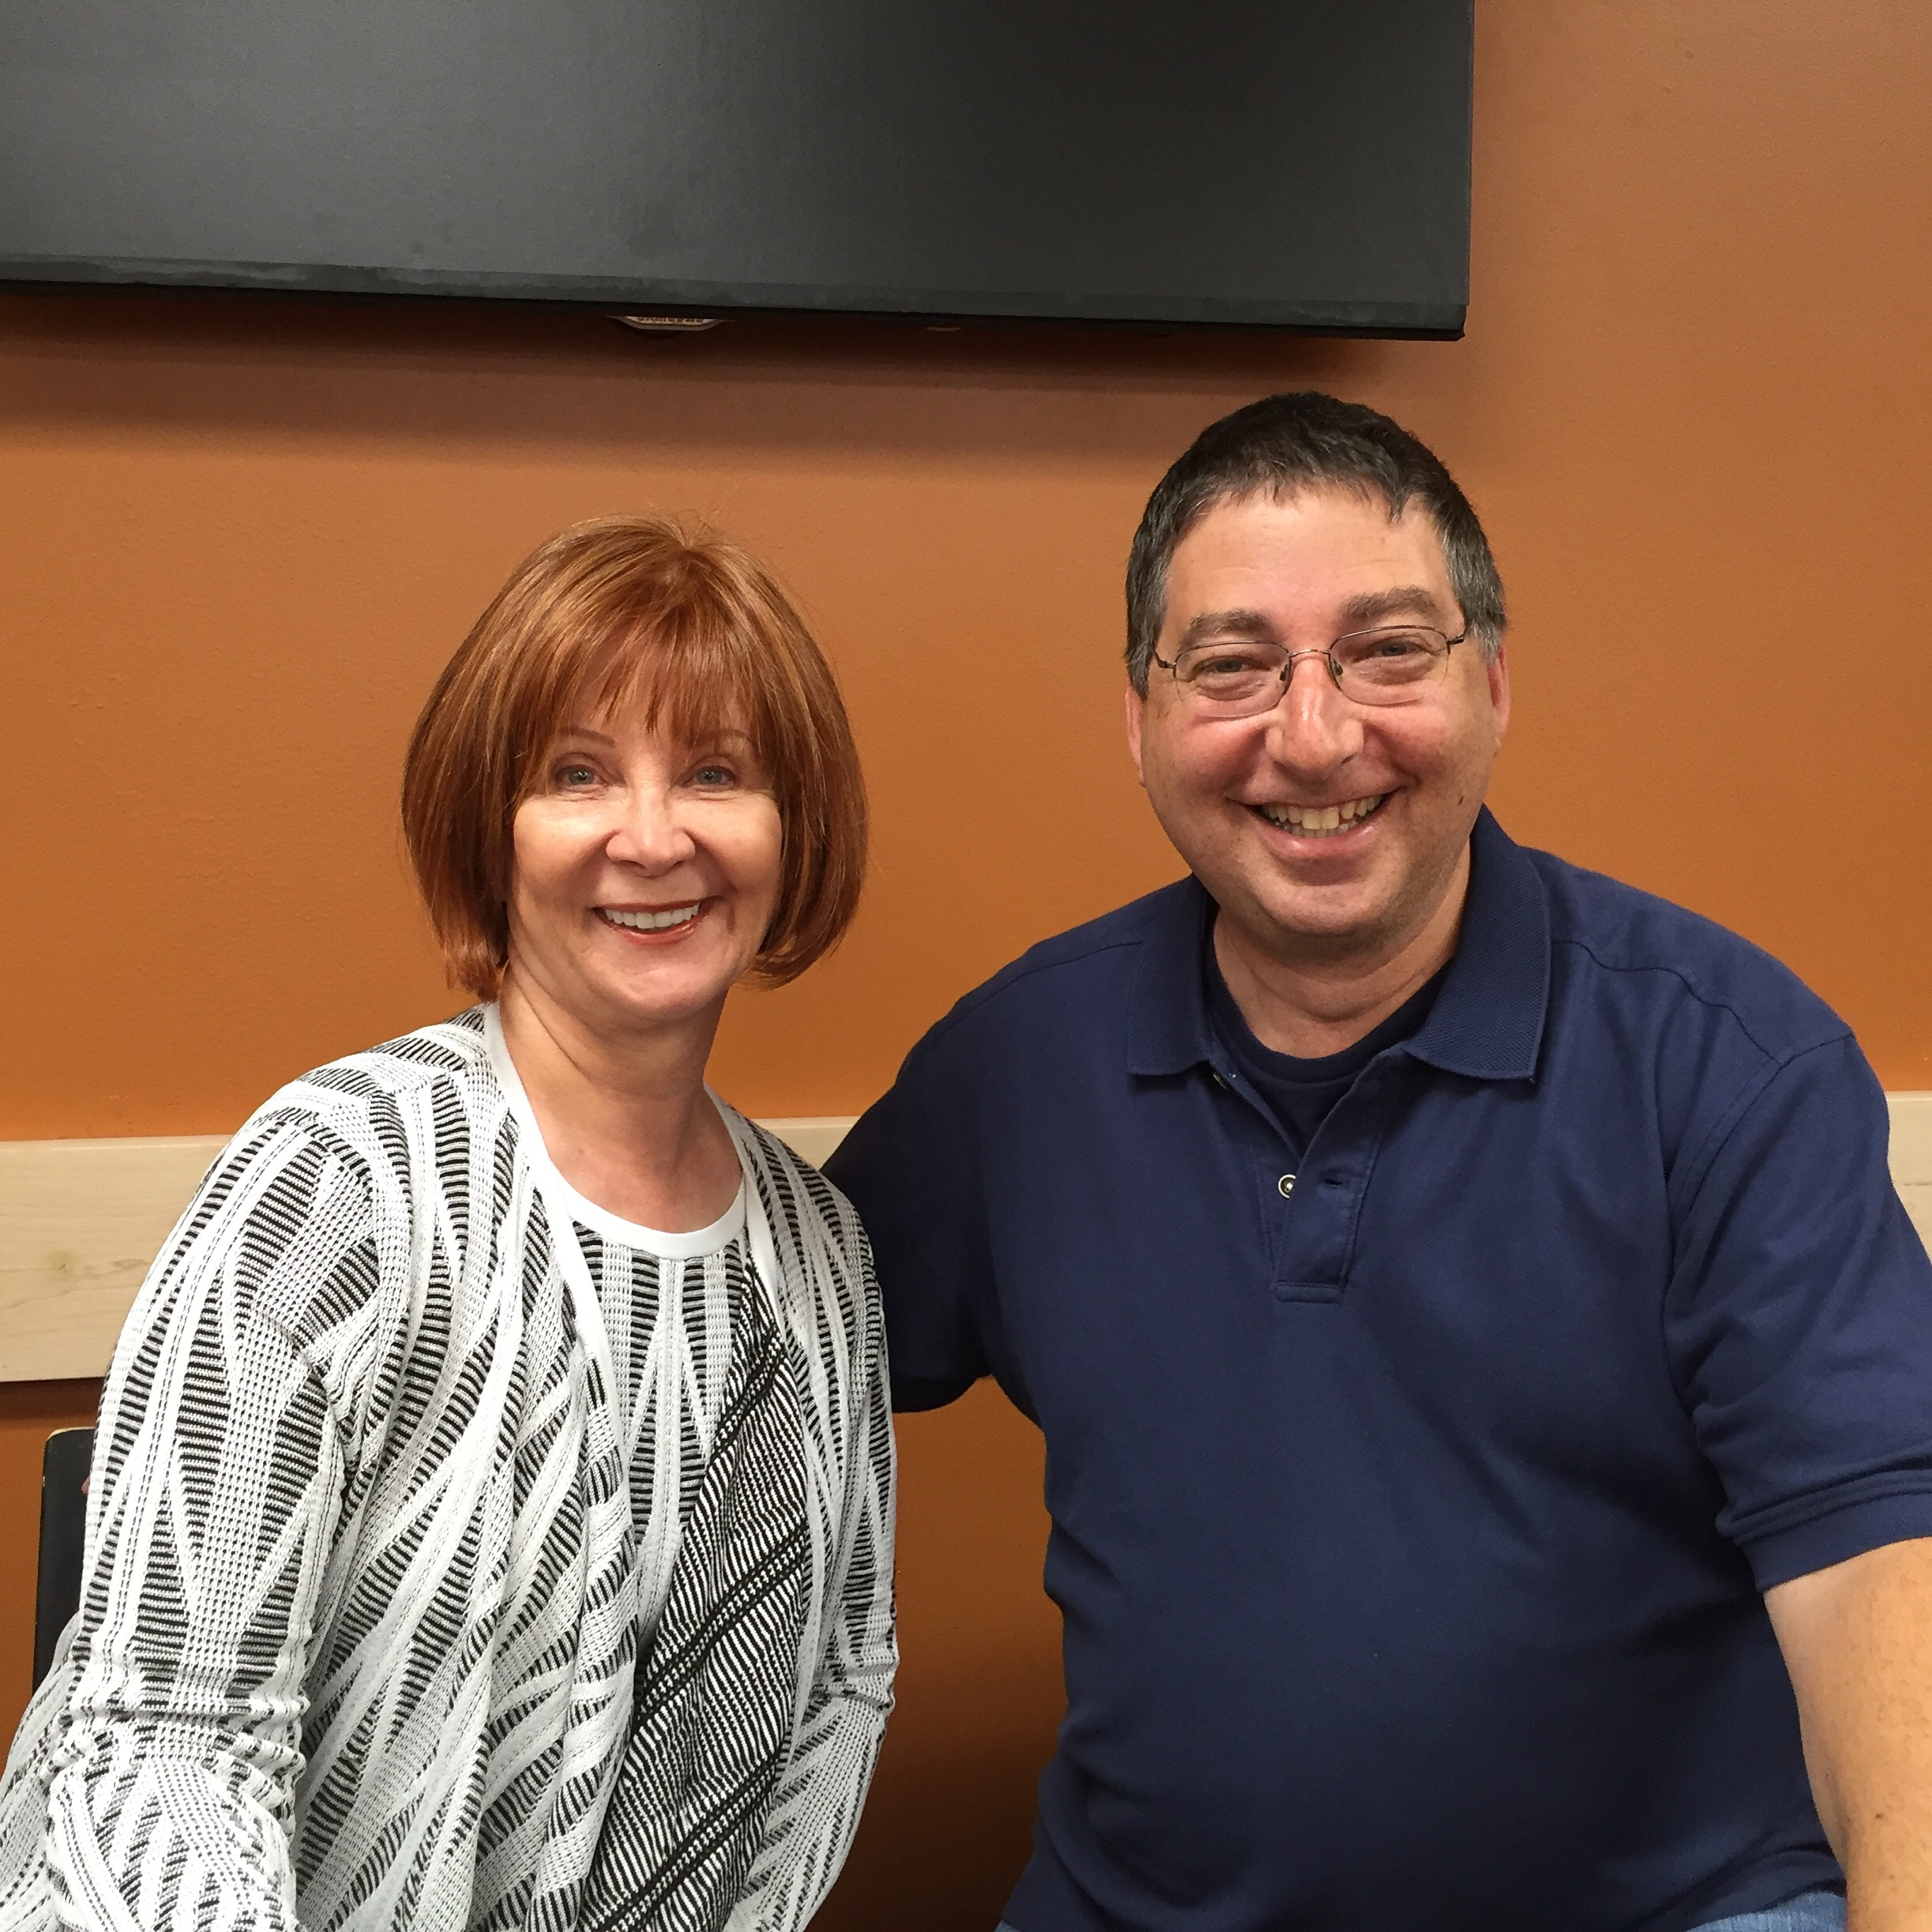 Janet Evanovich and Lee signing their book THE PURSUIT at Mysterious Galaxy on pub day: June 21, 2016